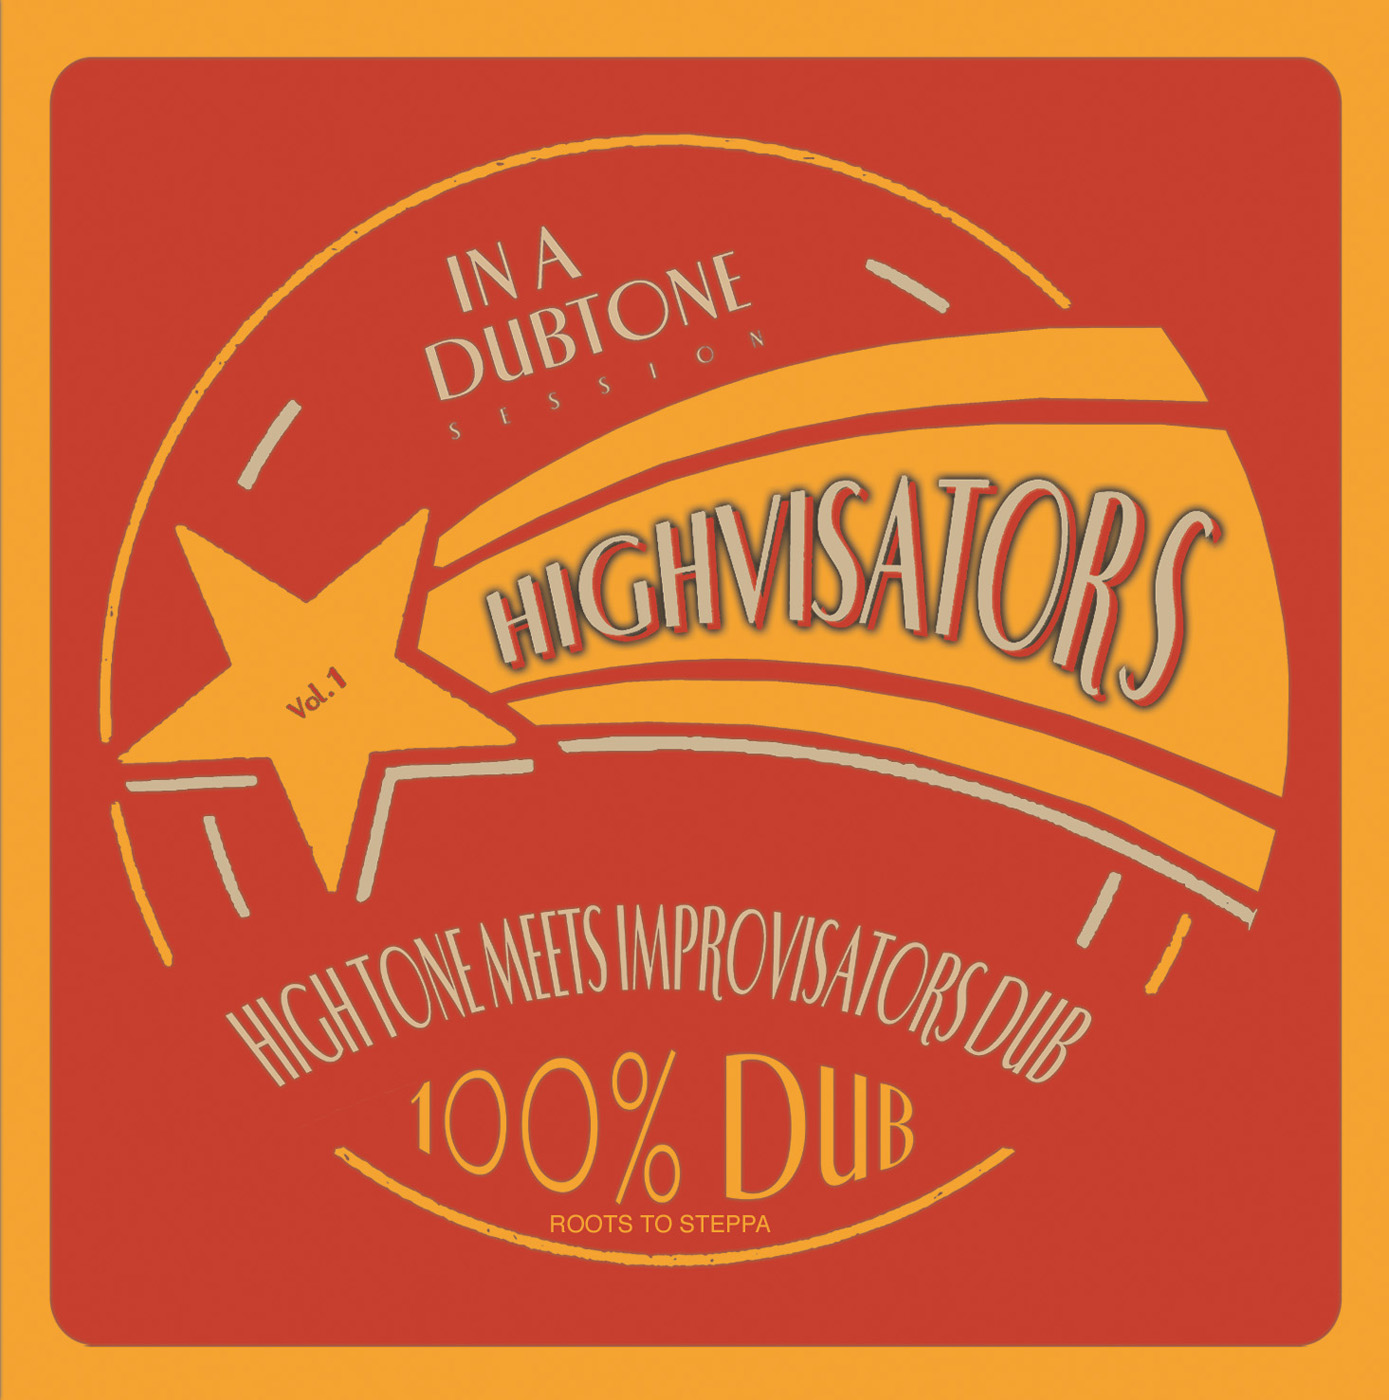 High Tone meets Improvisator Dub – Highvisators